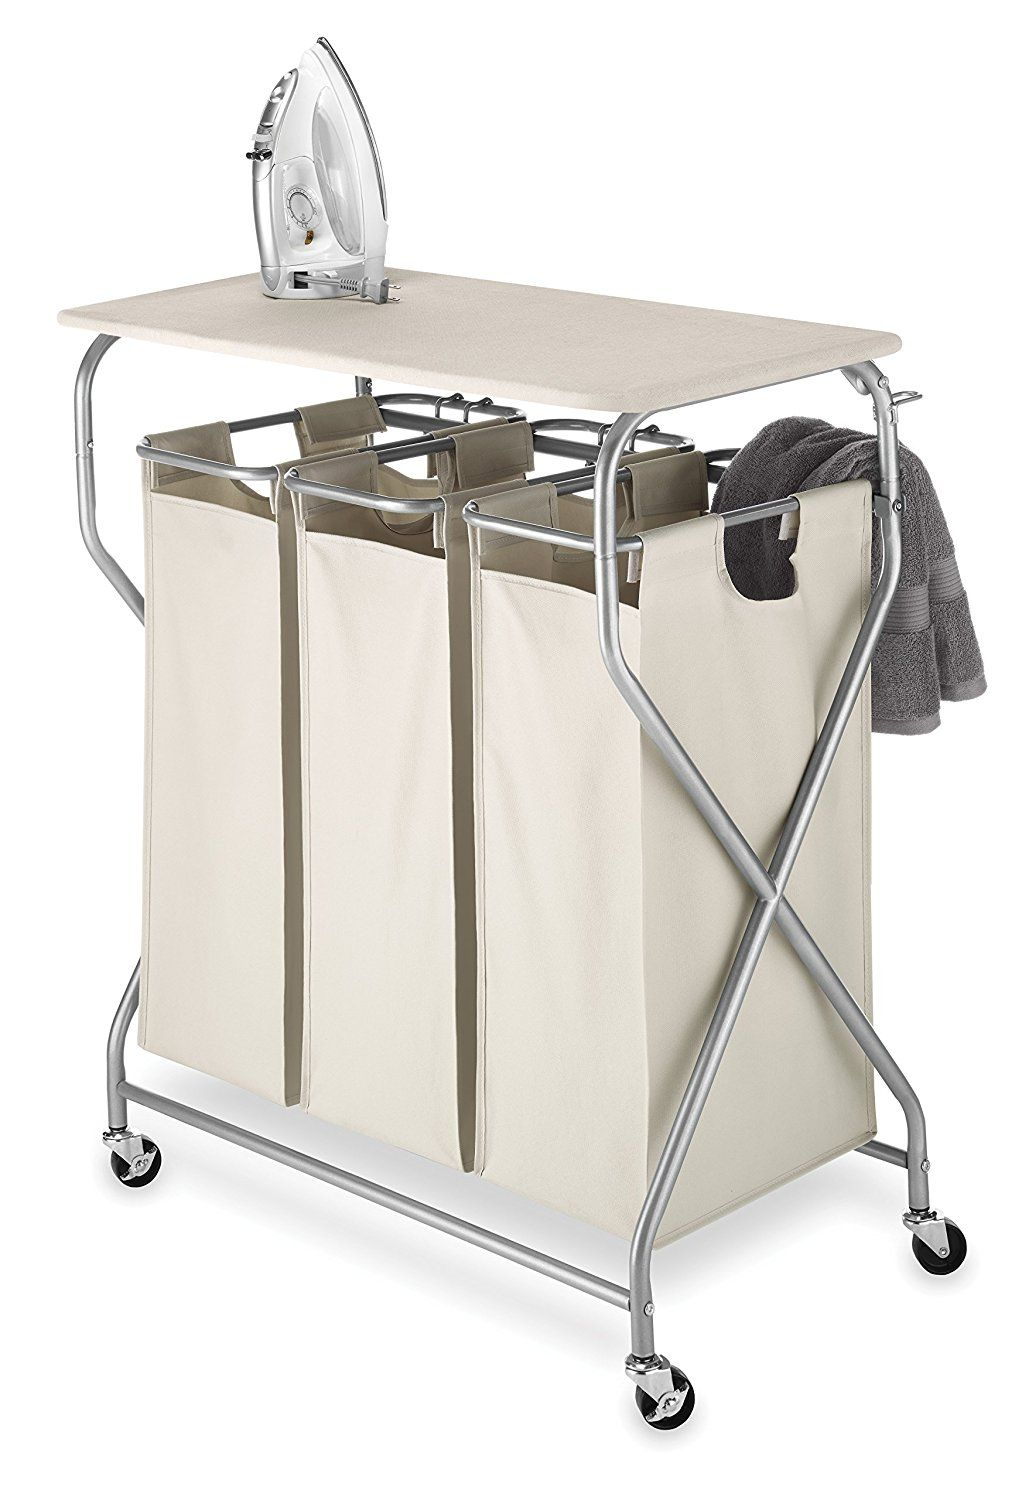 Whitmor Easy Lift Triple Sorter With Folding Table For Ironing